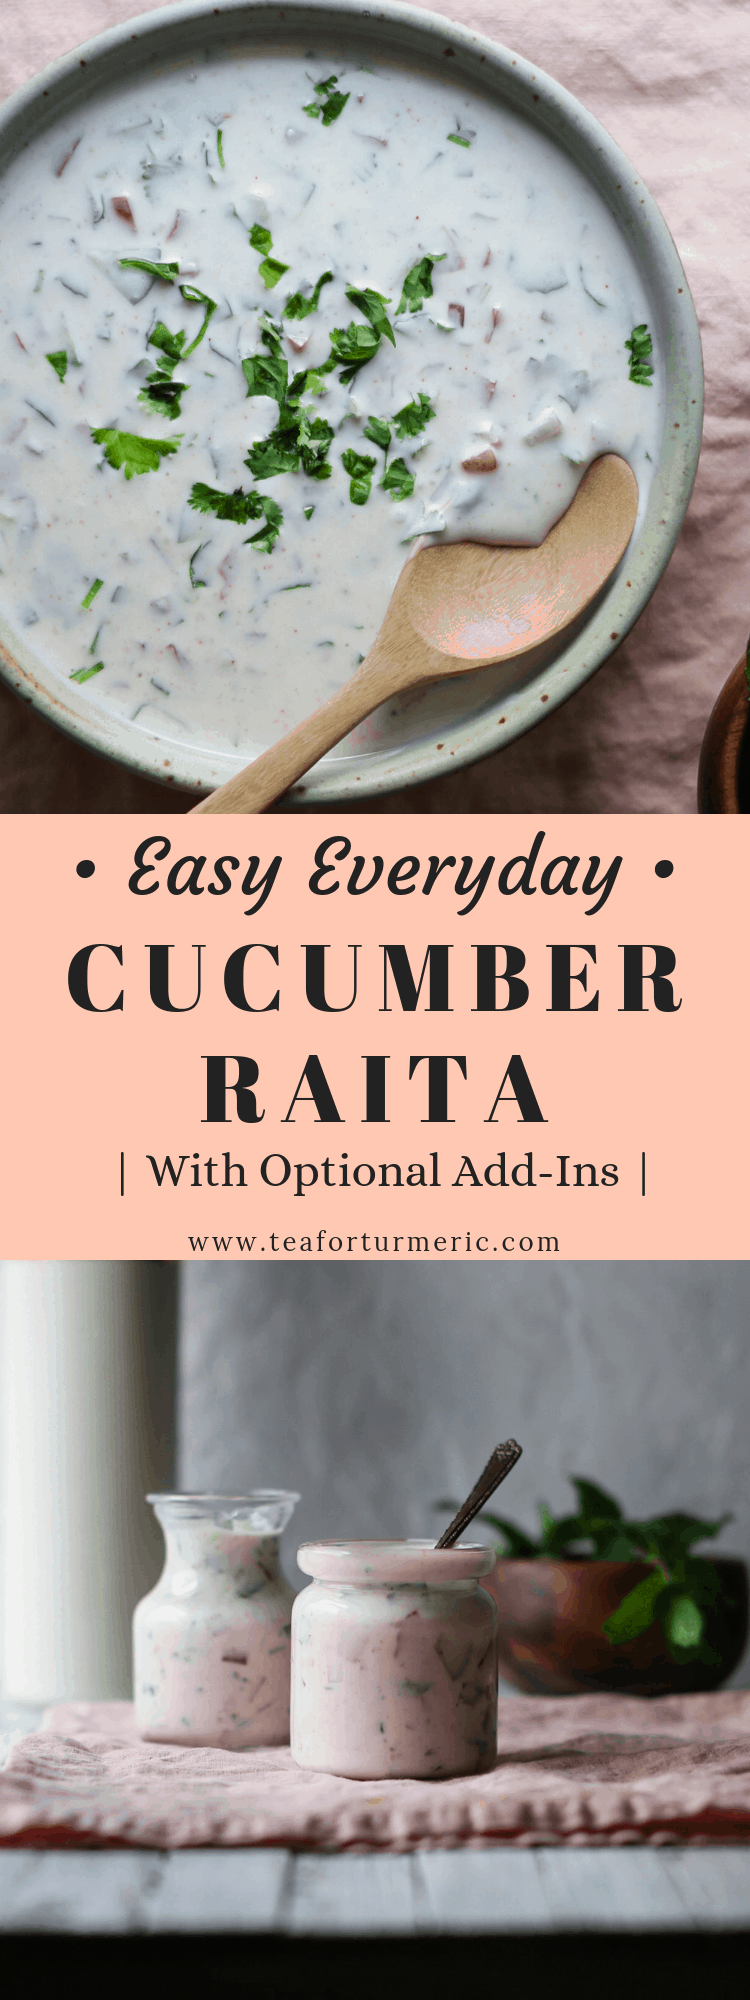 Raita is a classic yogurt salad that completes many a Pakistani and Indian meal. Here's basic, everyday cucumber raita I've grown up with. It's an easy recipe that can be whipped up in minutes with ingredients you likely have on hand. I've also included optional add-ins to give you an idea of the endless possibilities.  This is a recipe for an everyday cucumber raita, a cool and refreshing yogurt salad that pairs perfectly with biryani, pulao, and many other Pakistani and Indian di...